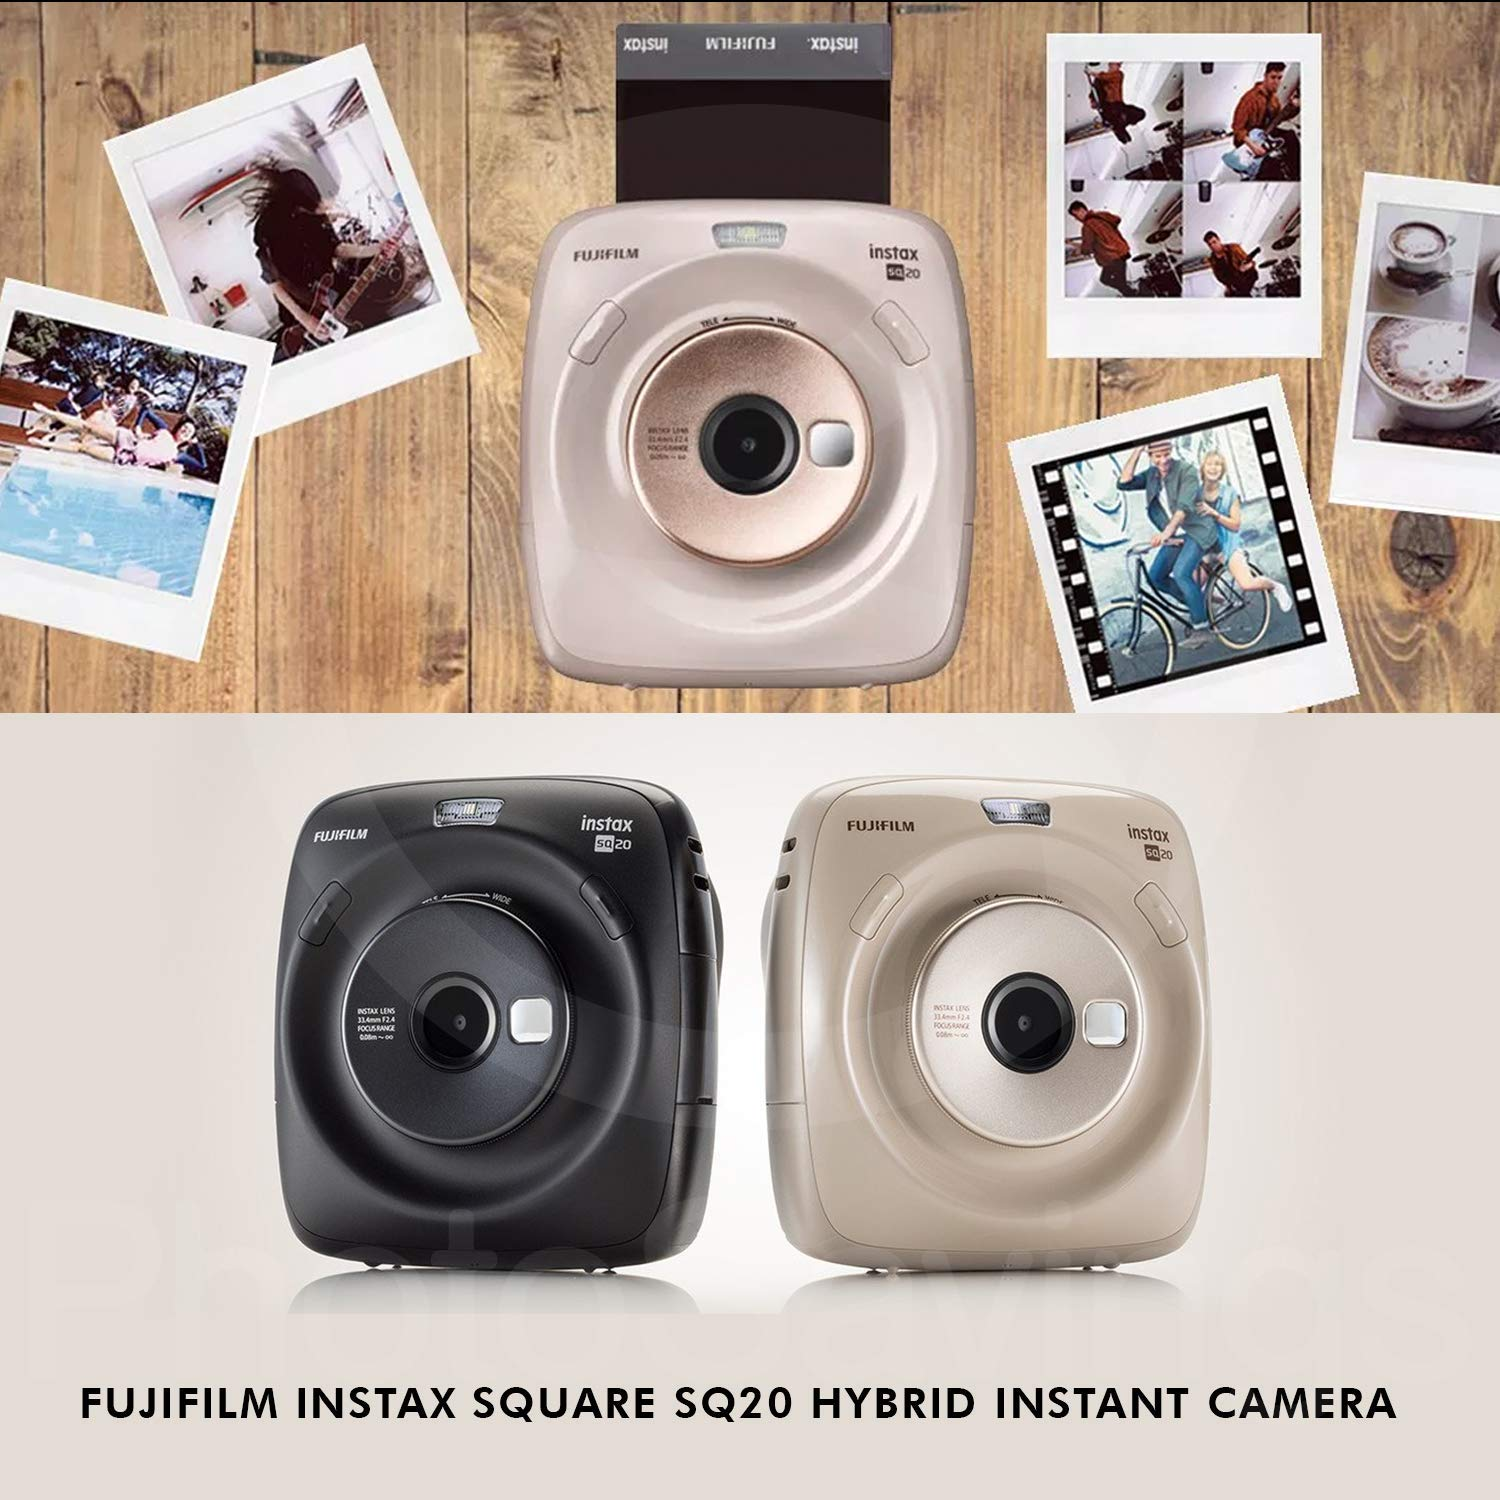 Fujifilm Instax Square SQ20 Hybrid Instant Camera (Black) - Deluxe Accessory Bundle with 40 Sheets of Instant Film + 16GB Micro sd Card + Case + Xpix Camera Strap and More. (USA Warrantty) by Fujifilm (Image #2)